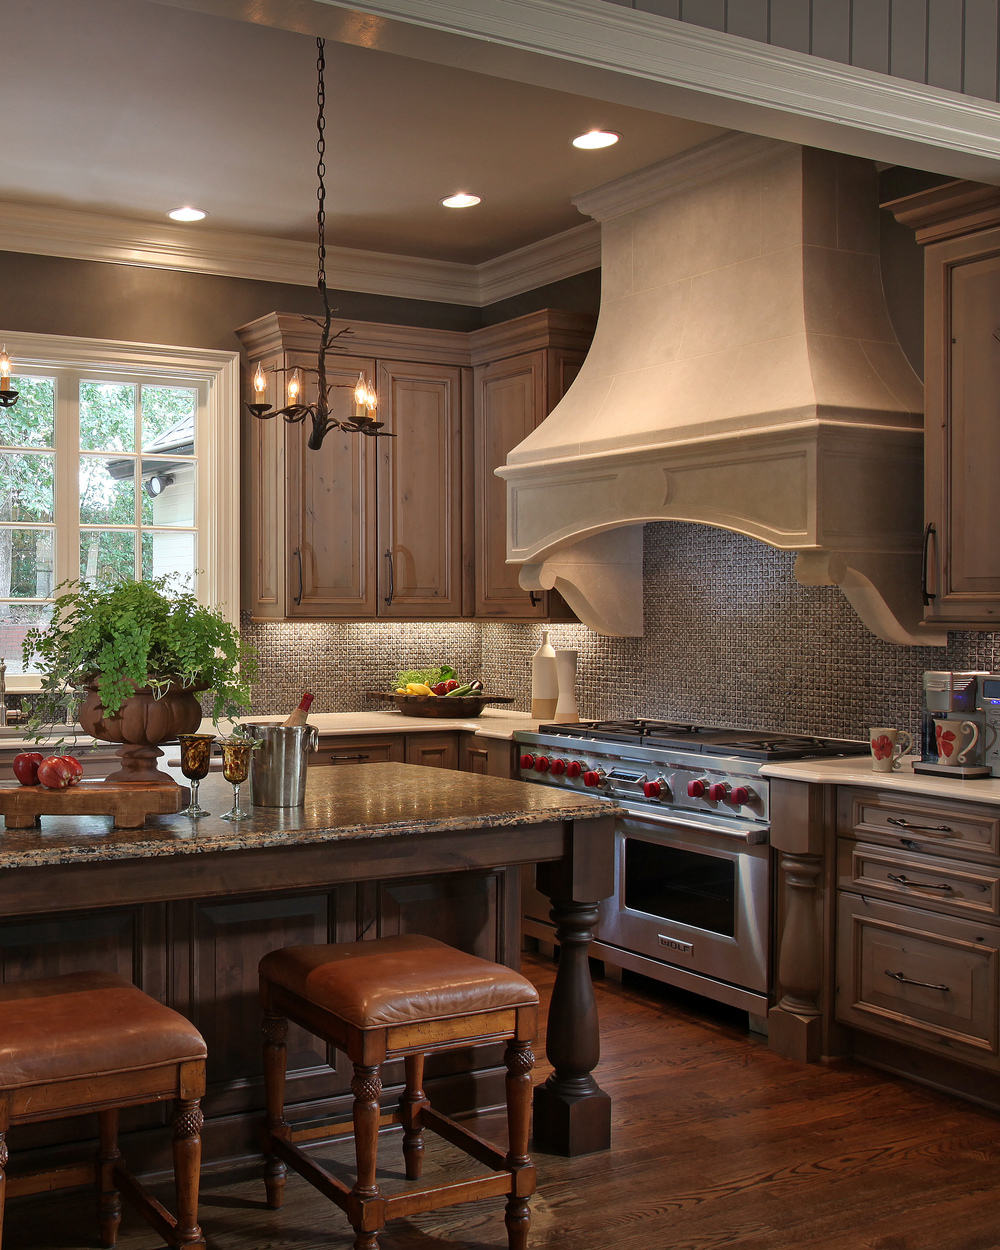 Kitchen And Bath Gallery: Kitchen & Bathroom Design And Remodelingl